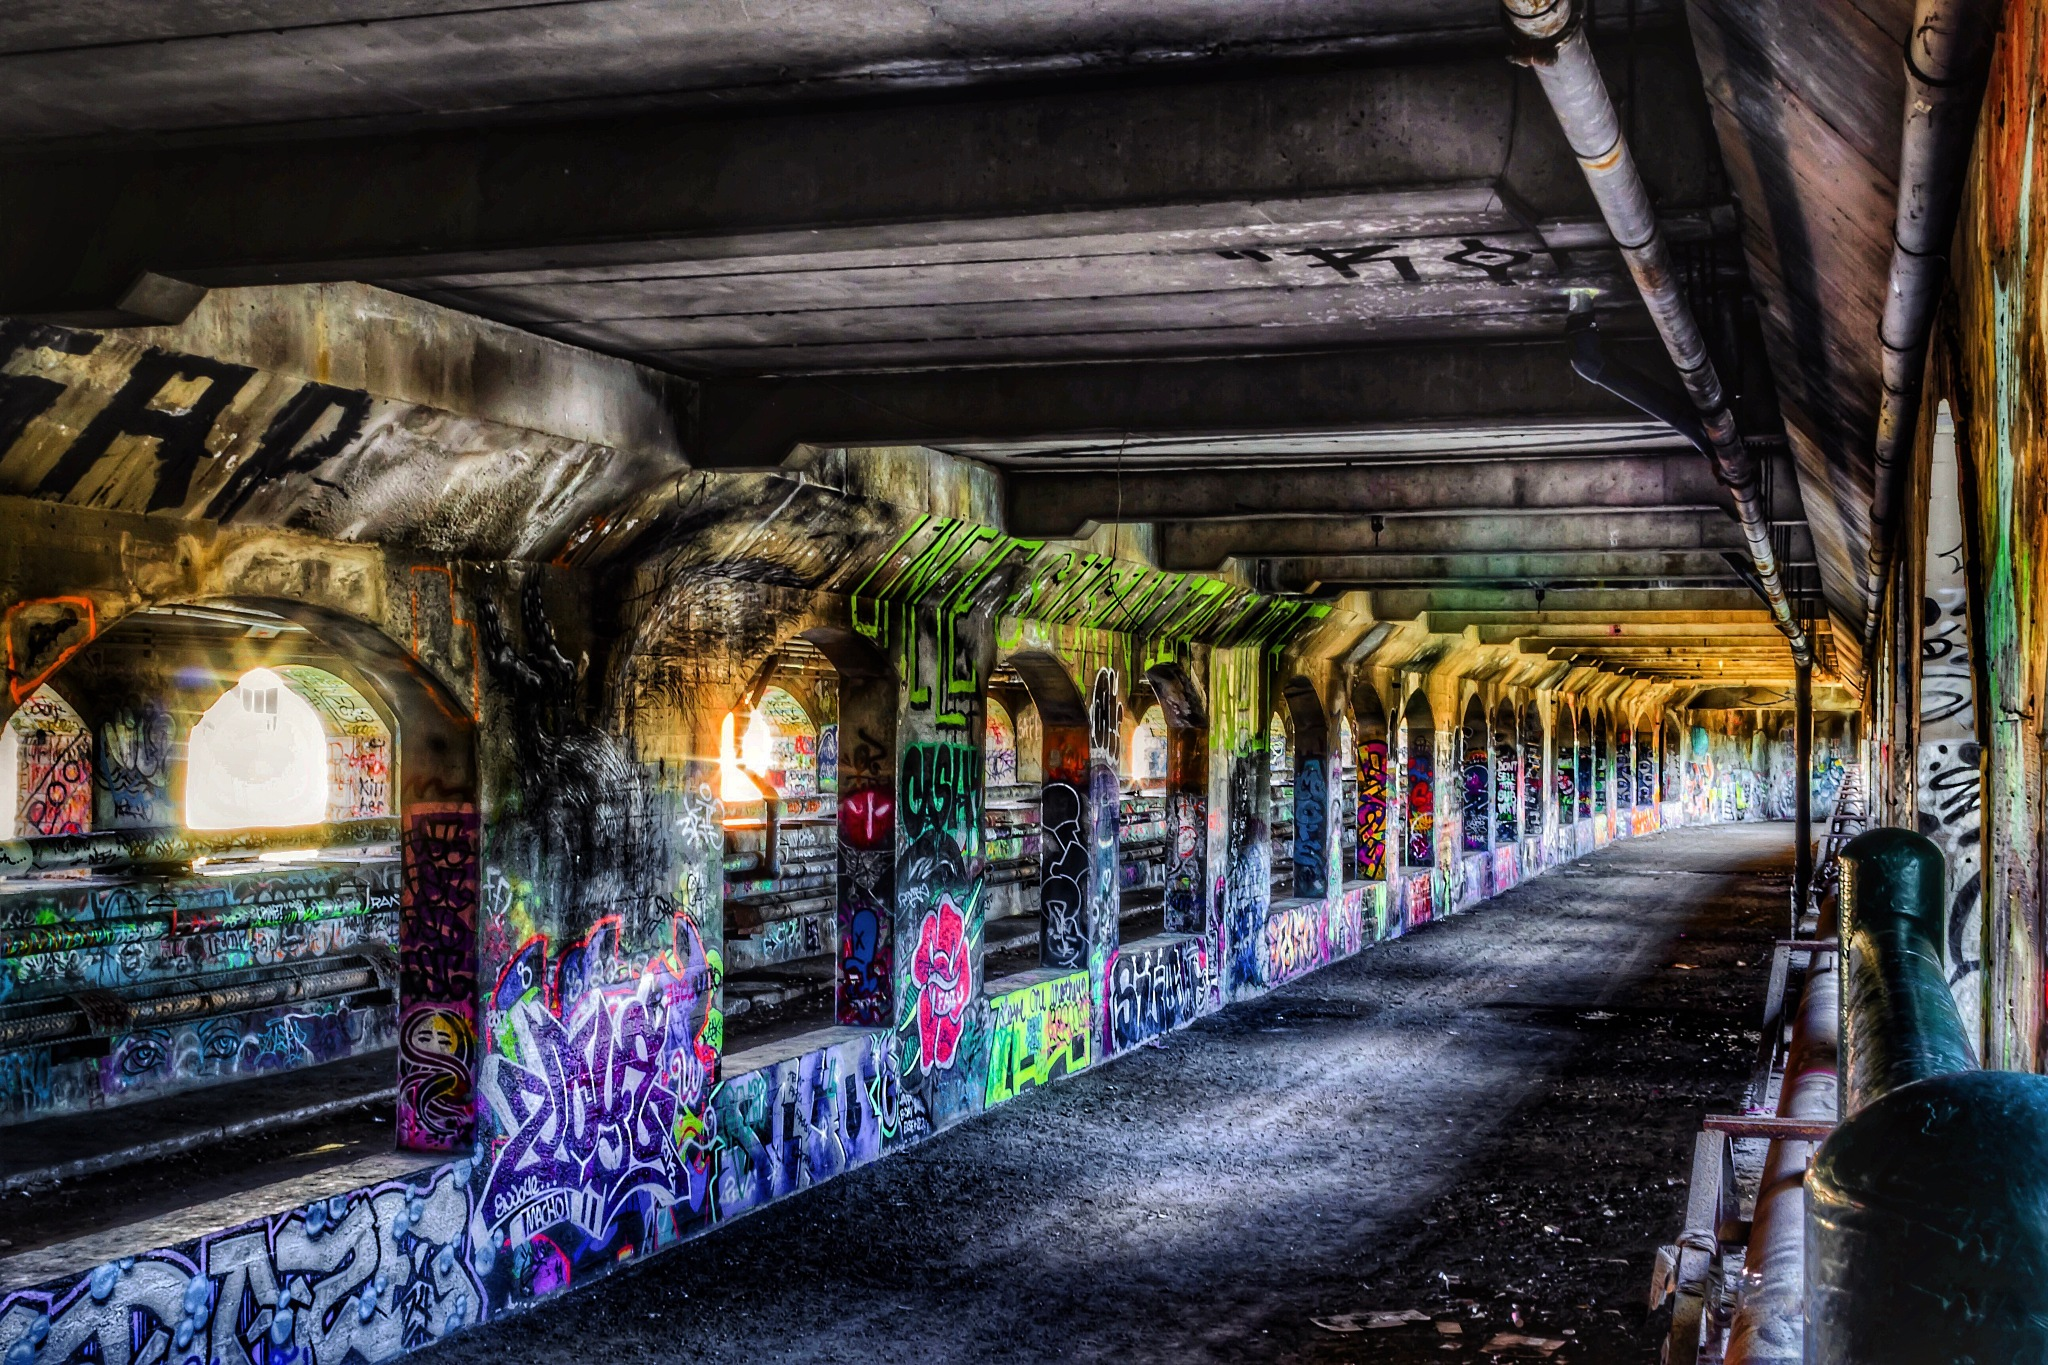 Abandoned Subway by Robert Eichas